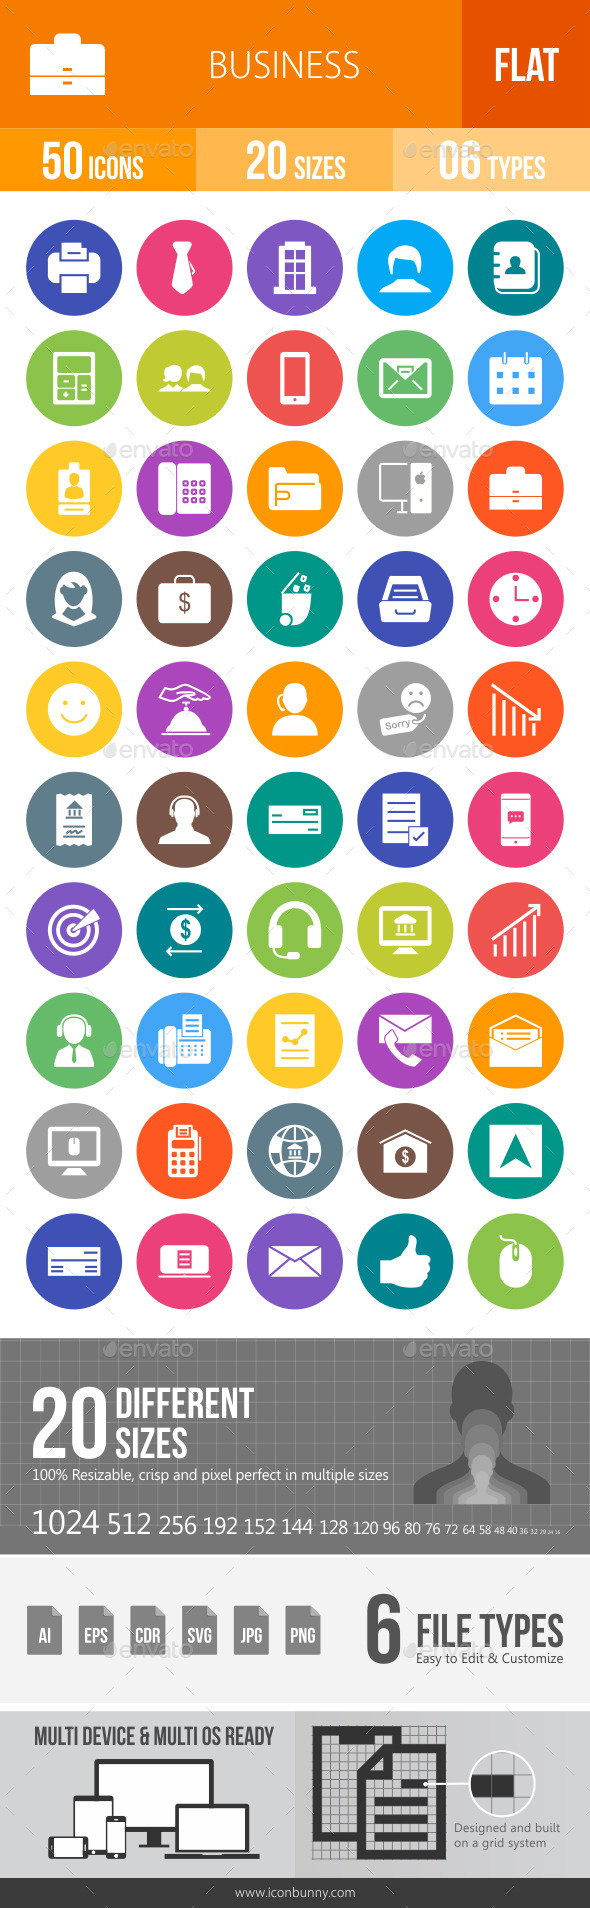 Business Flat Round Icons - Icons